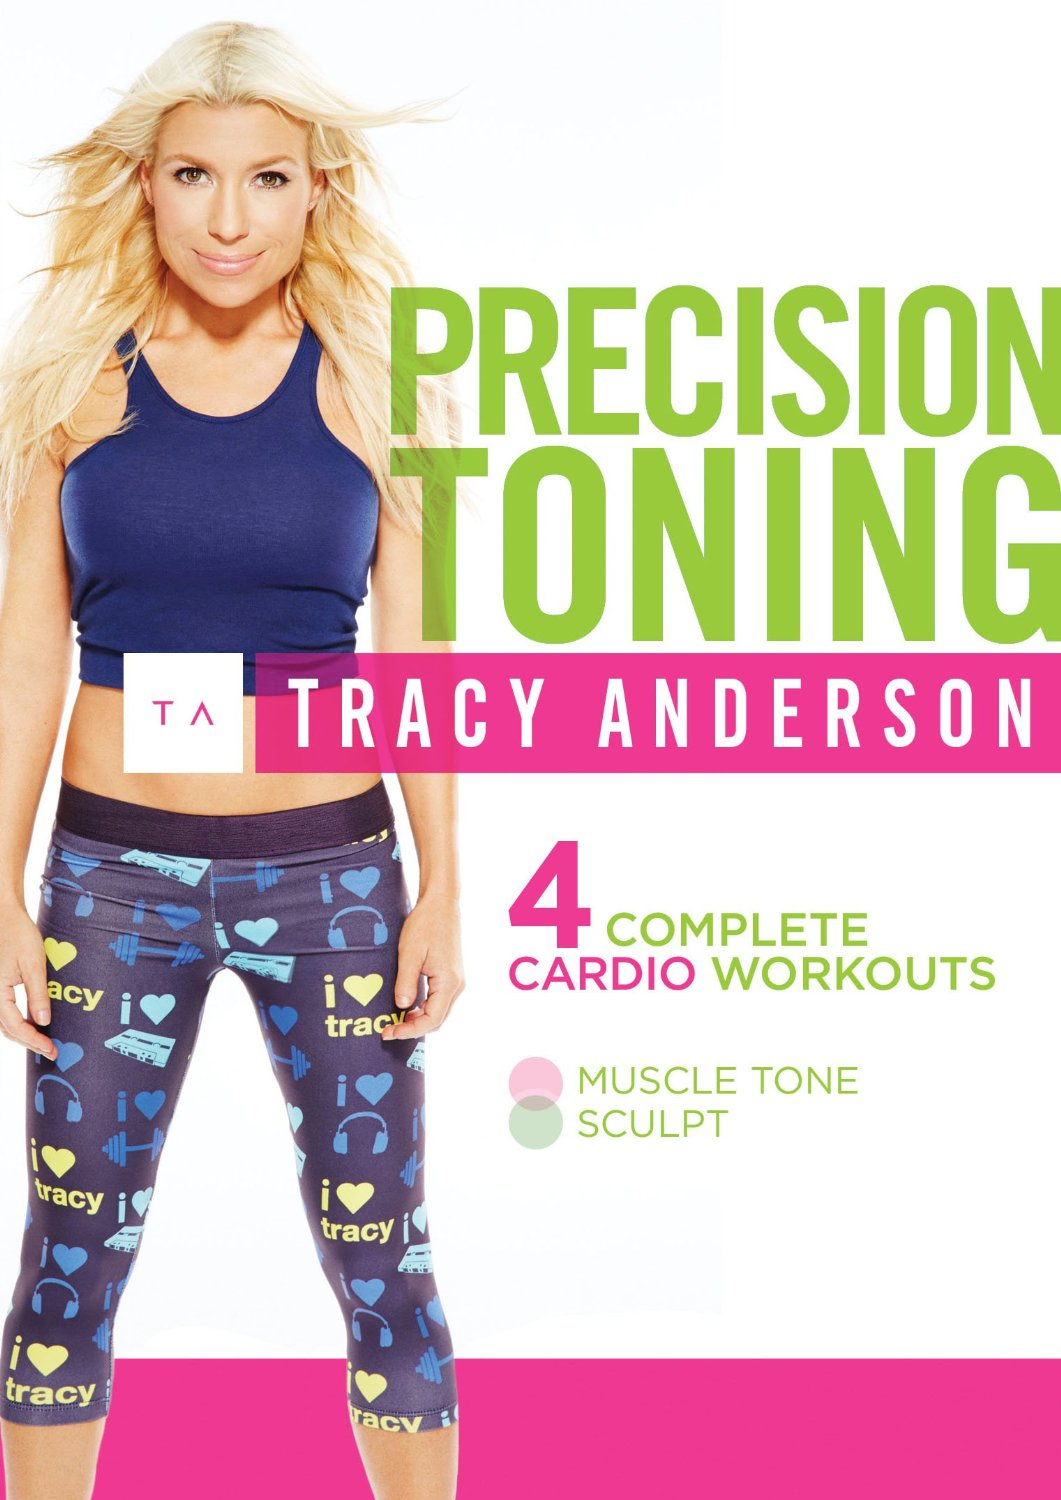 6 Workout Dvds To Try This Winter